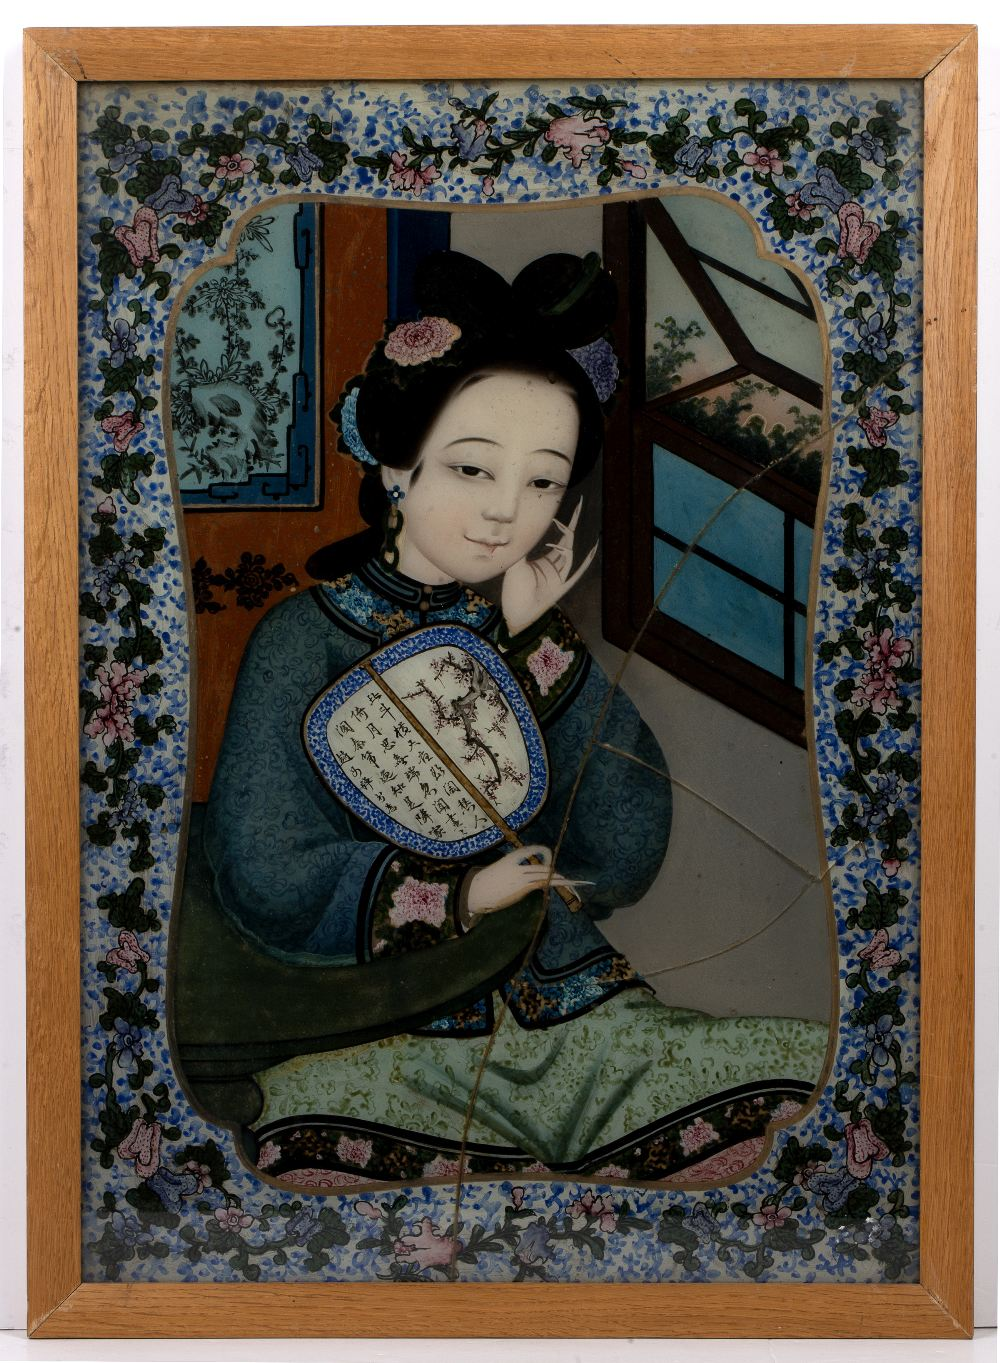 Export reverse painting on glass Chinese, circa 1858 depicting a court beauty Note-the identical - Image 2 of 3